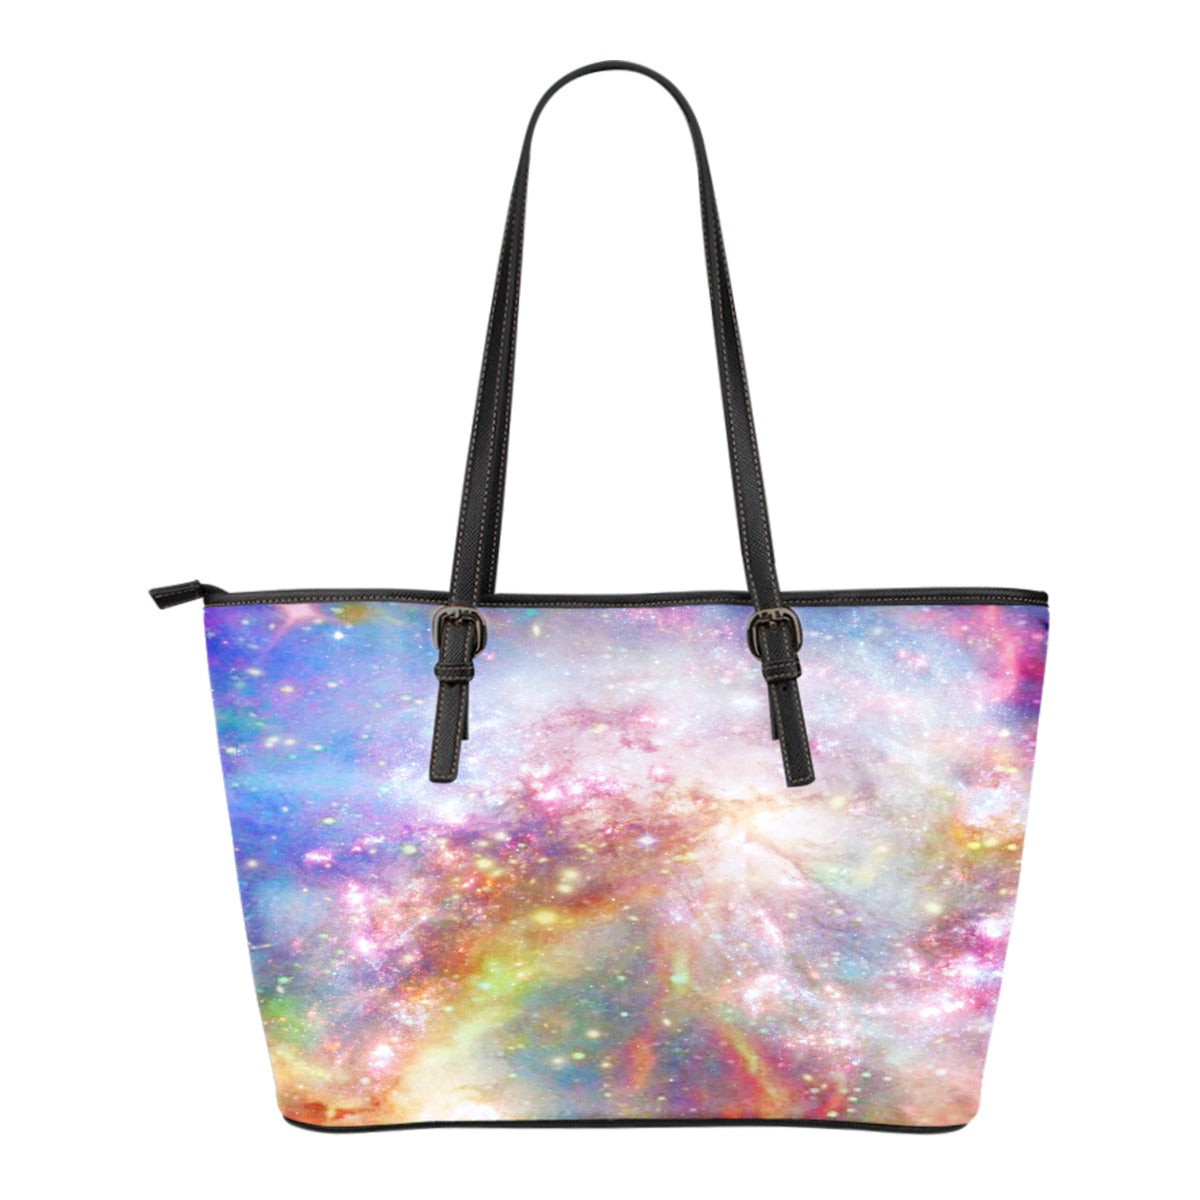 Pastel Galaxy Themed Design C9 Women Small Leather Tote Bag